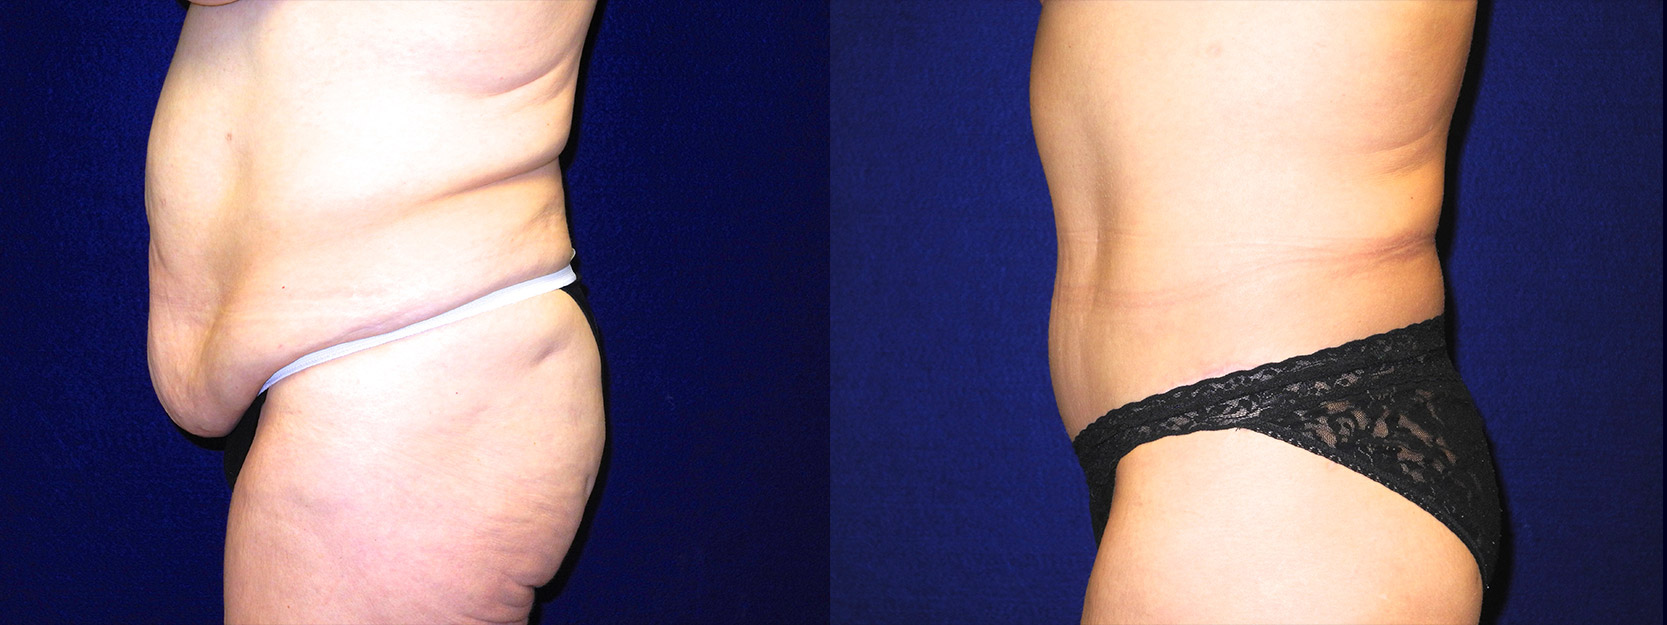 Left Profile View - Tummy Tuck After Massive Weight Loss